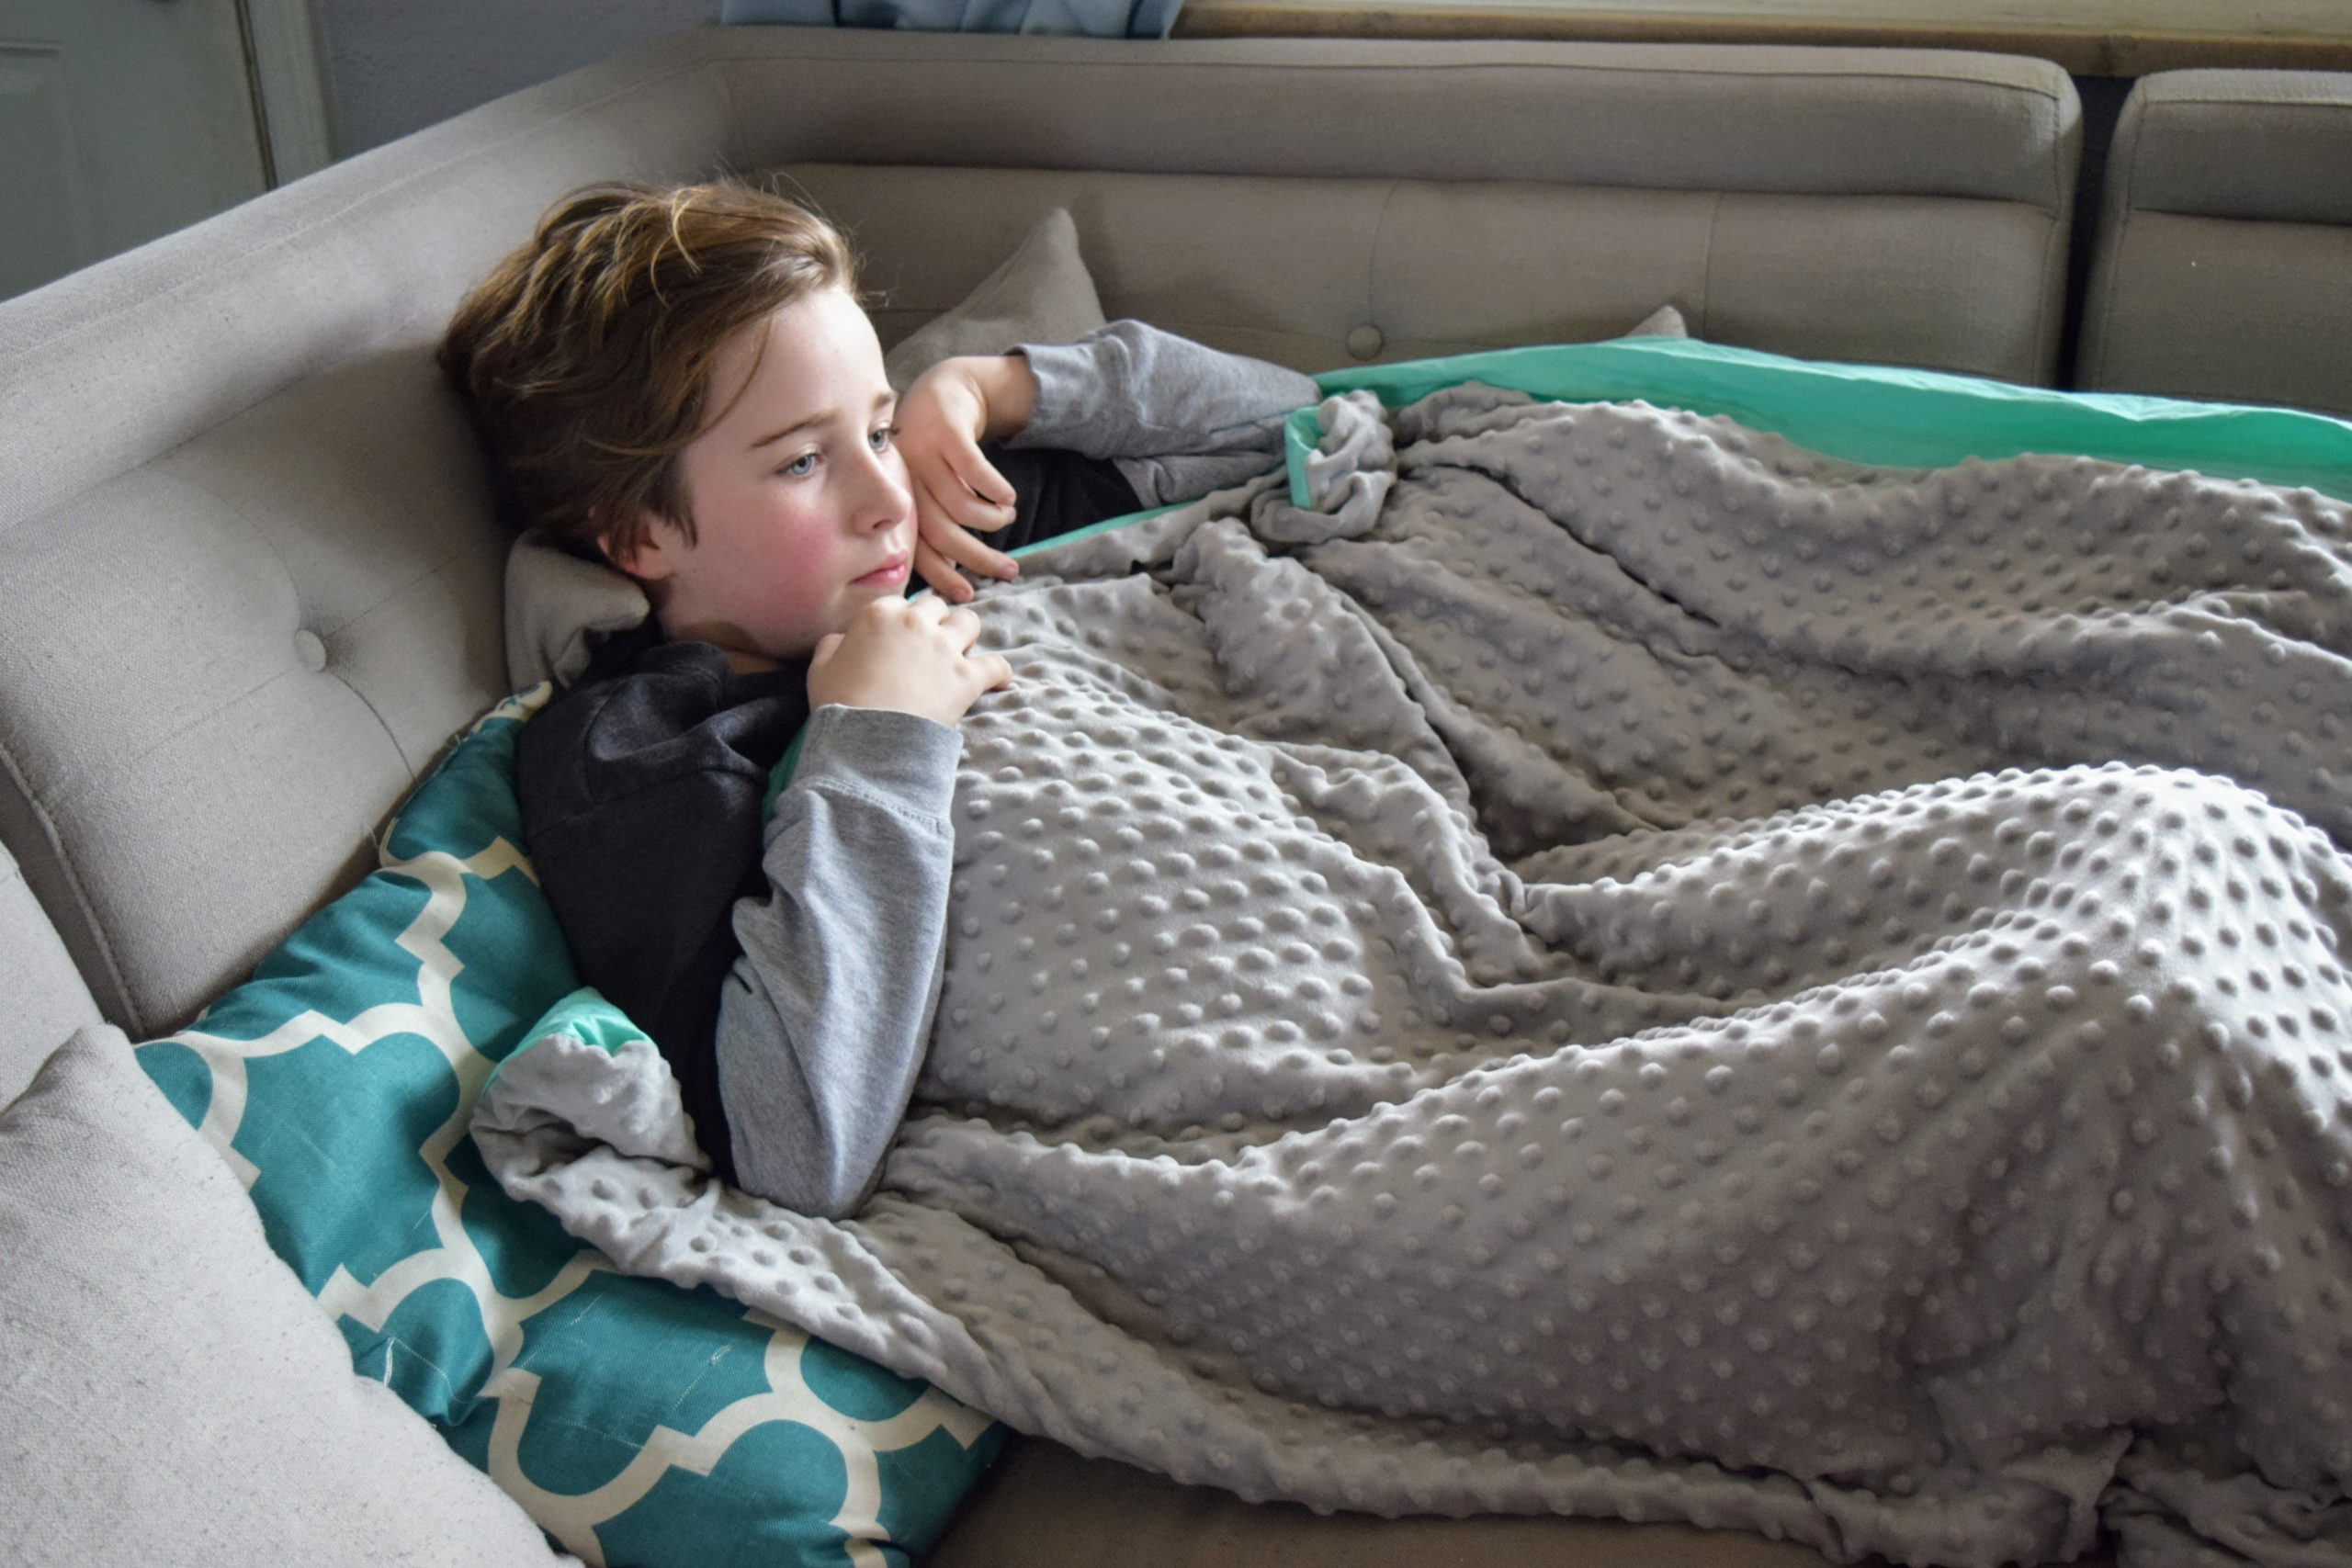 Do weighted blankets help with autism? Keep reading to answer all your questions about weighted blankets for children & adults with autism! #autismparenting #autism #asd #weightedblamket #adhd